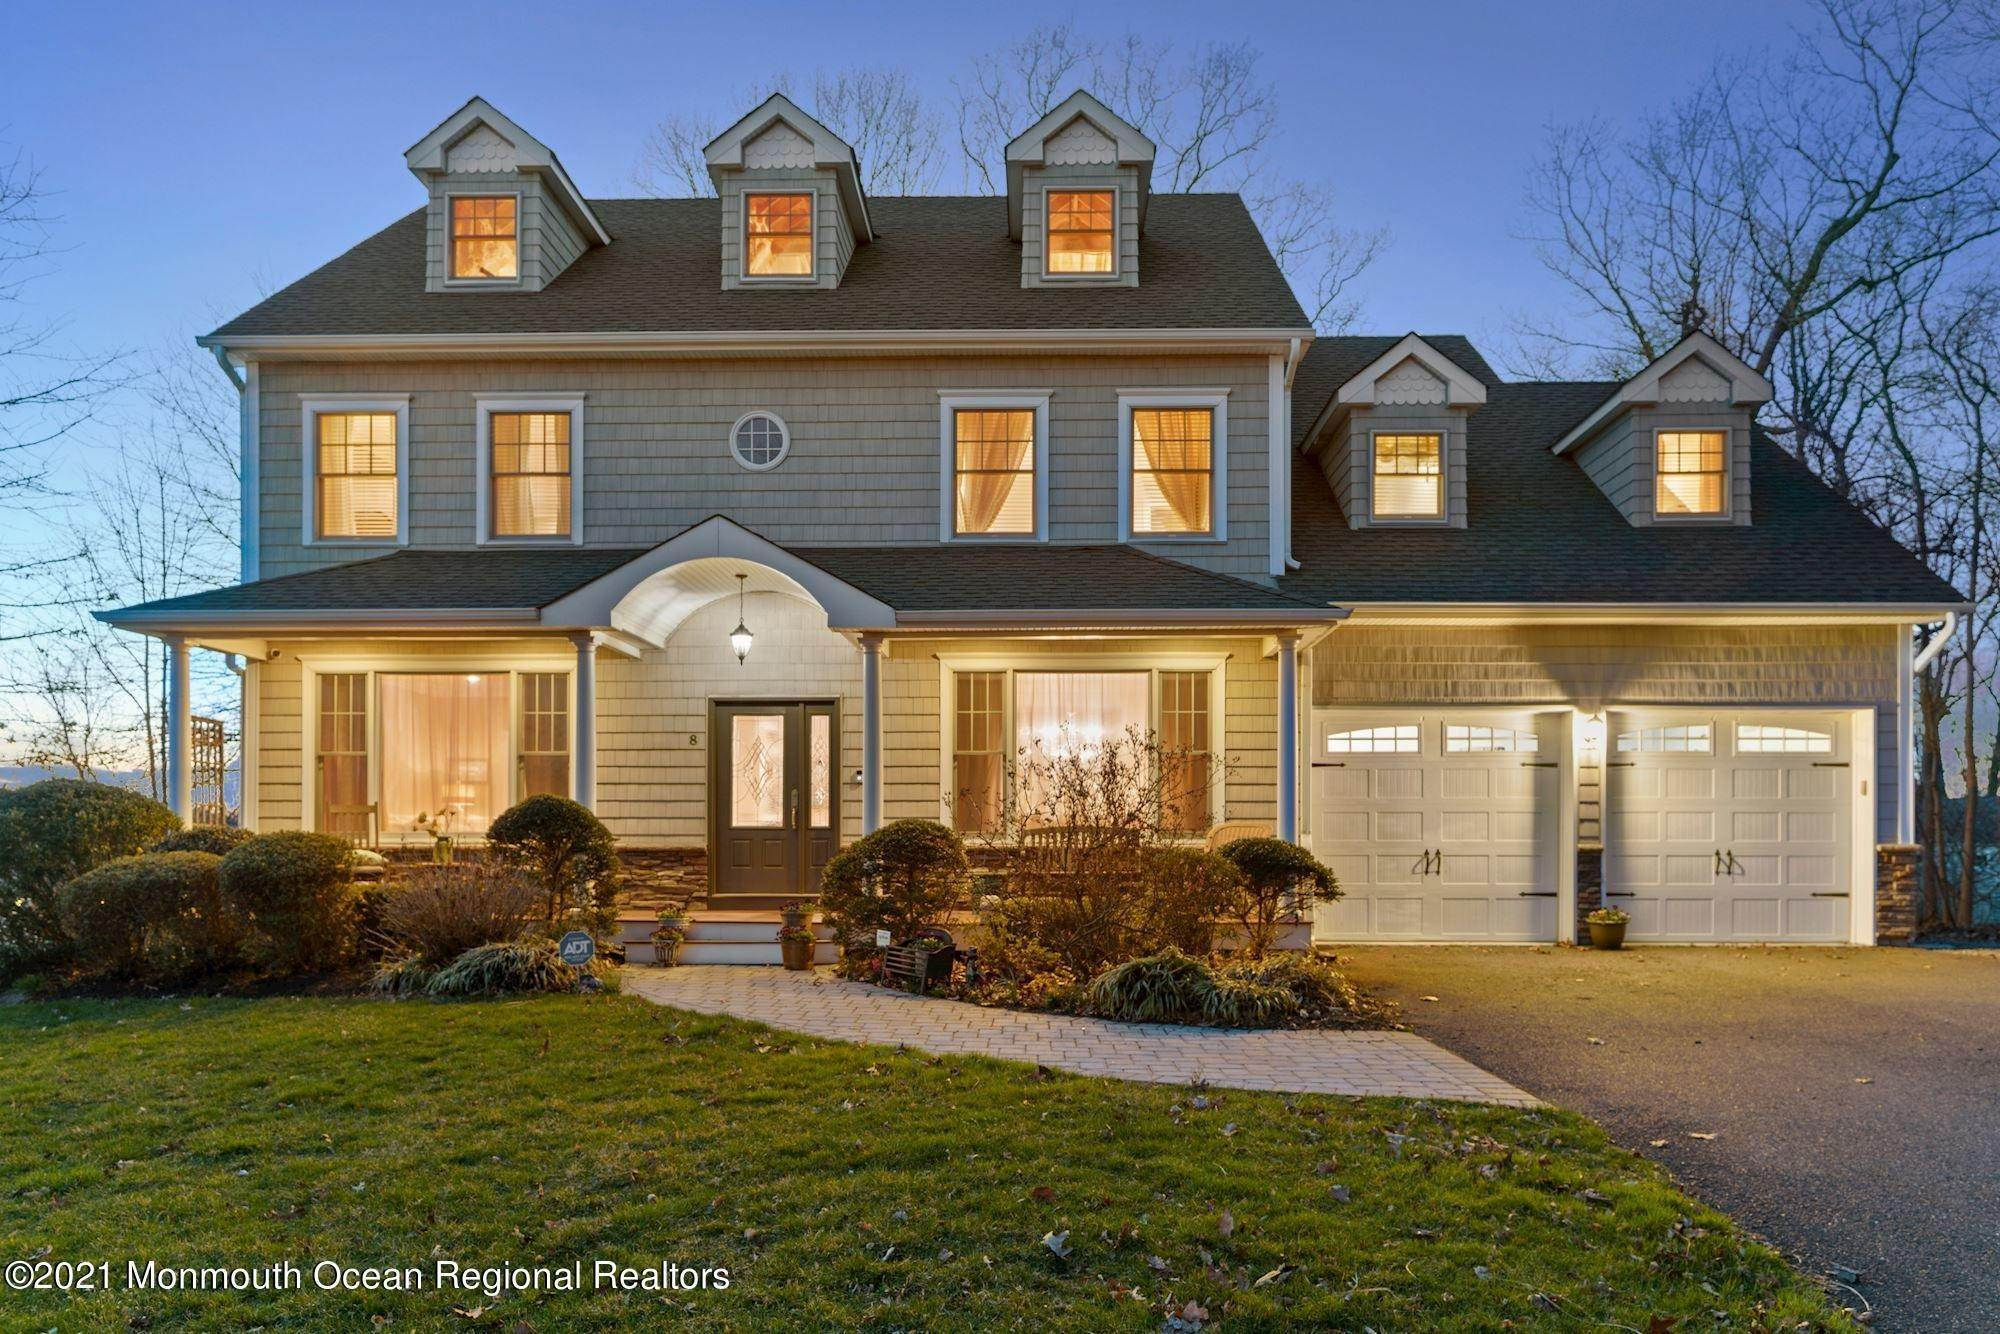 Single Family Homes for Sale at 8 Ridgeview Avenue Atlantic Highlands, New Jersey 07716 United States